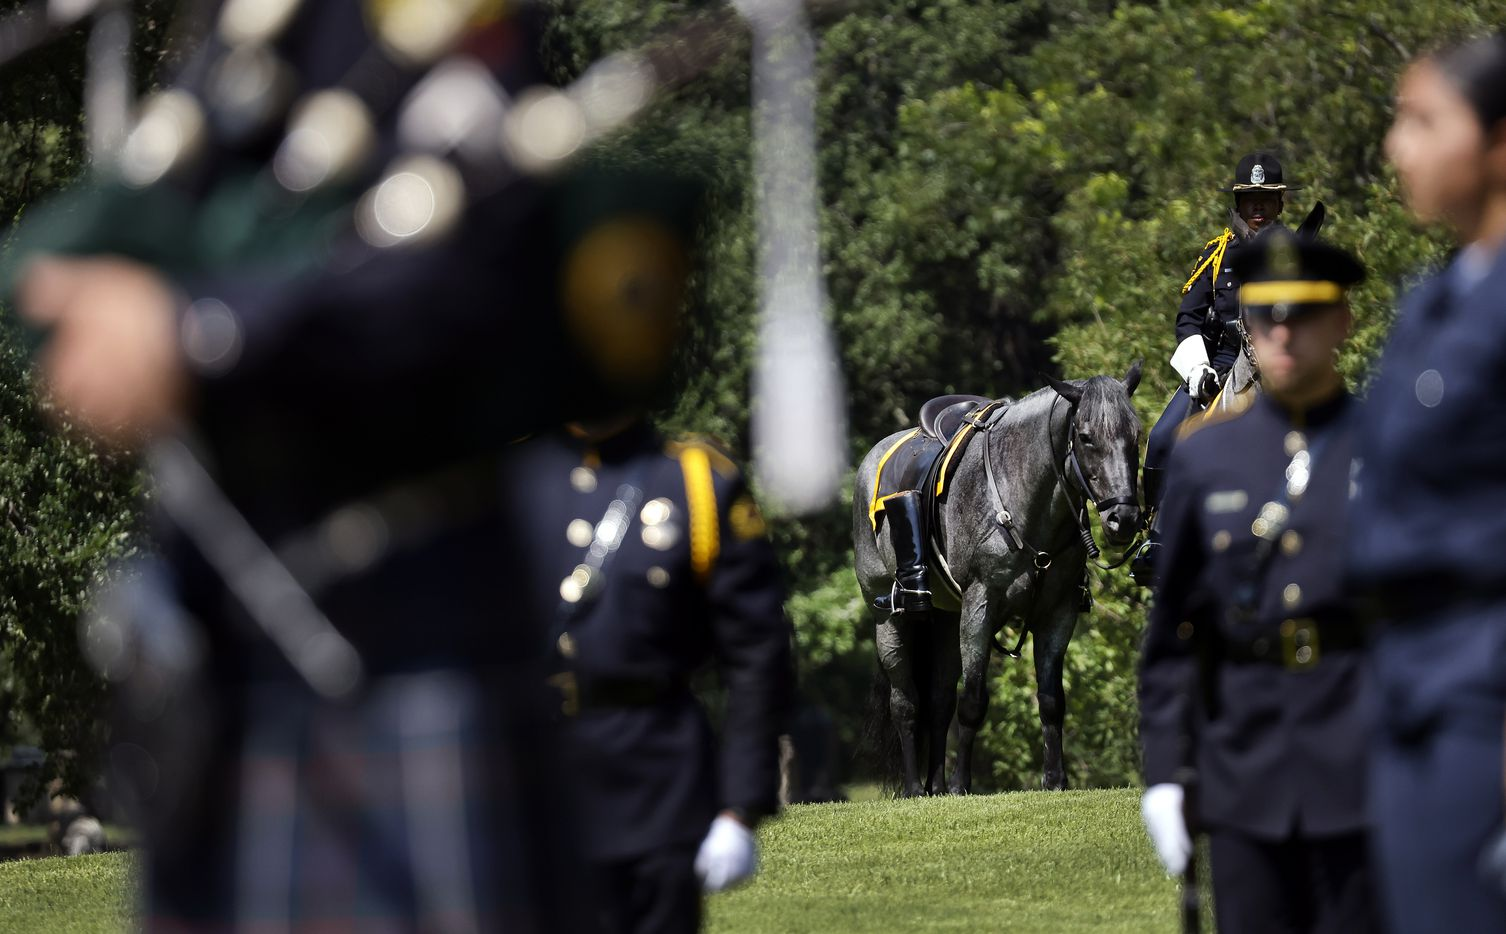 With officers boots reversed in the stirrups, a riderless horse stood atop a hill during the 2021 Police Memorial Day at the Dallas Police Memorial in downtown Dallas, Wednesday, July 7, 2021. It was the 5th anniversary of the July 7th ambush and special recognition was given to those officers who were killed. (Tom Fox/The Dallas Morning News)